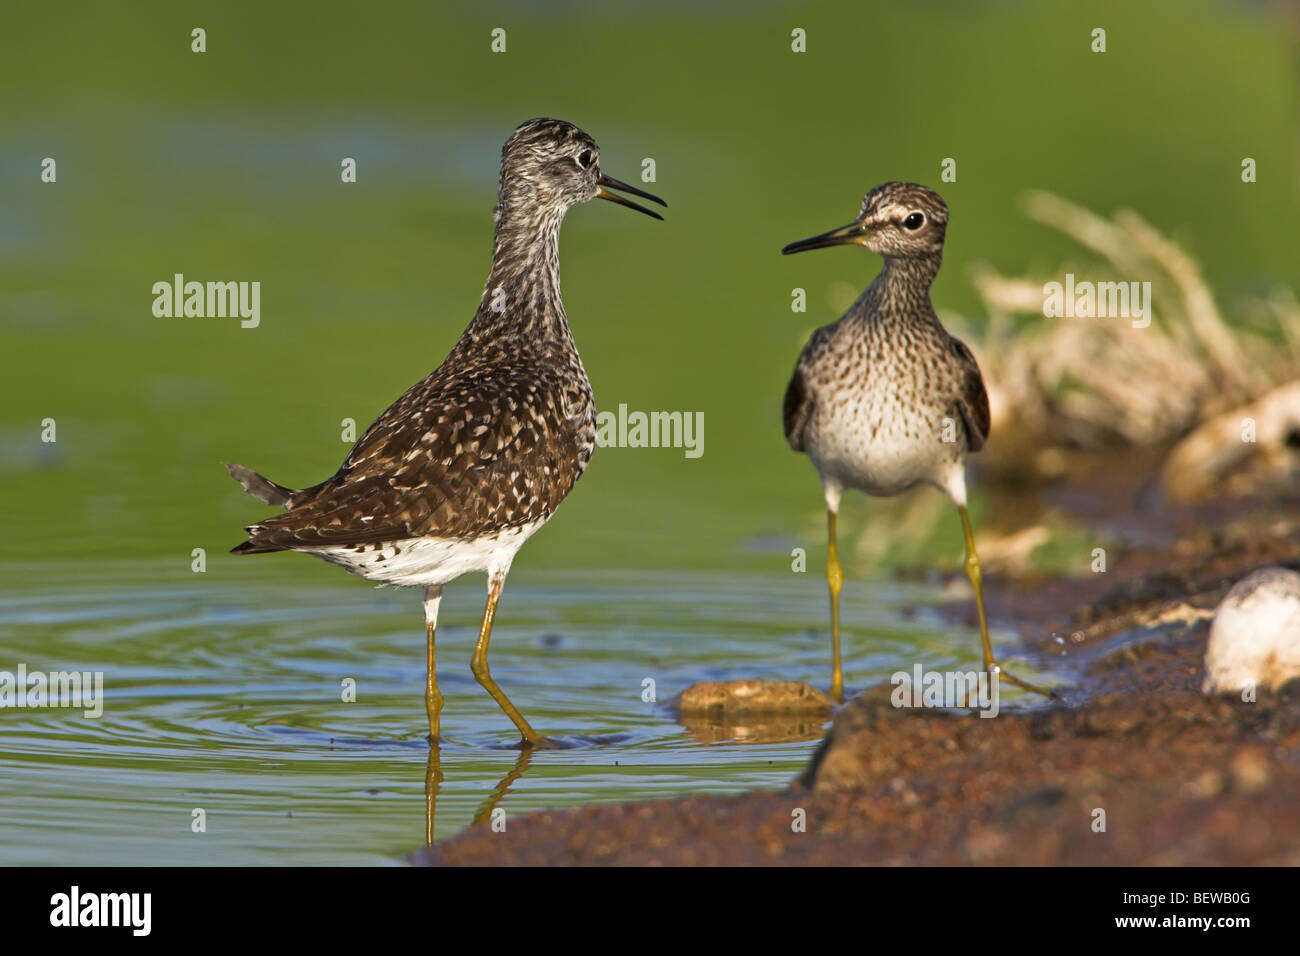 Two Wood Sandpipers (Tringa glareola) facing at the waters edge, low angle view - Stock Image